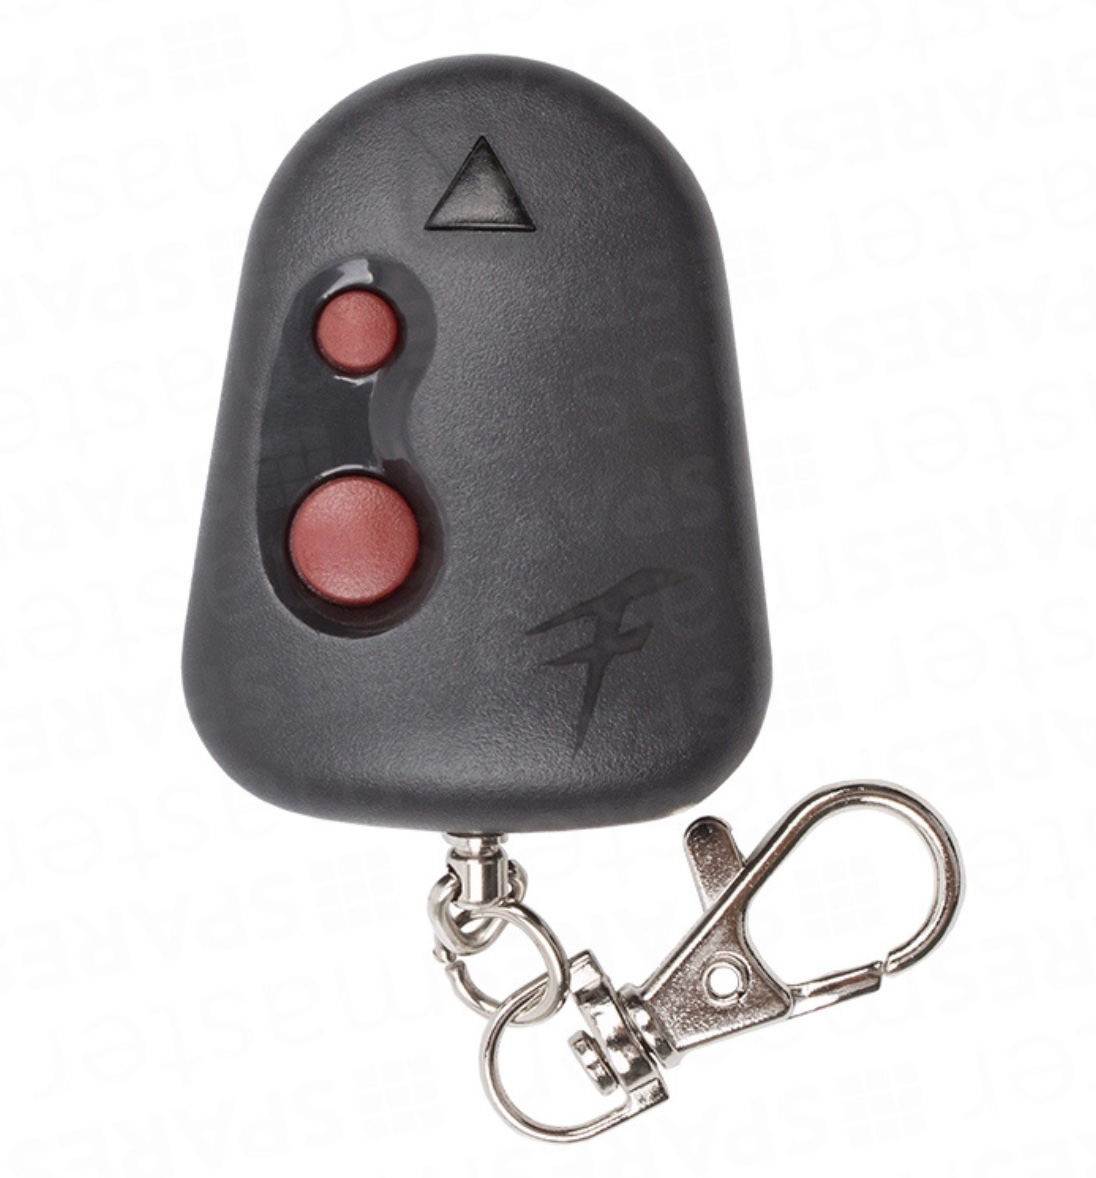 Cardale Thermaglide Later Style Keyfob Handset AZAR2058